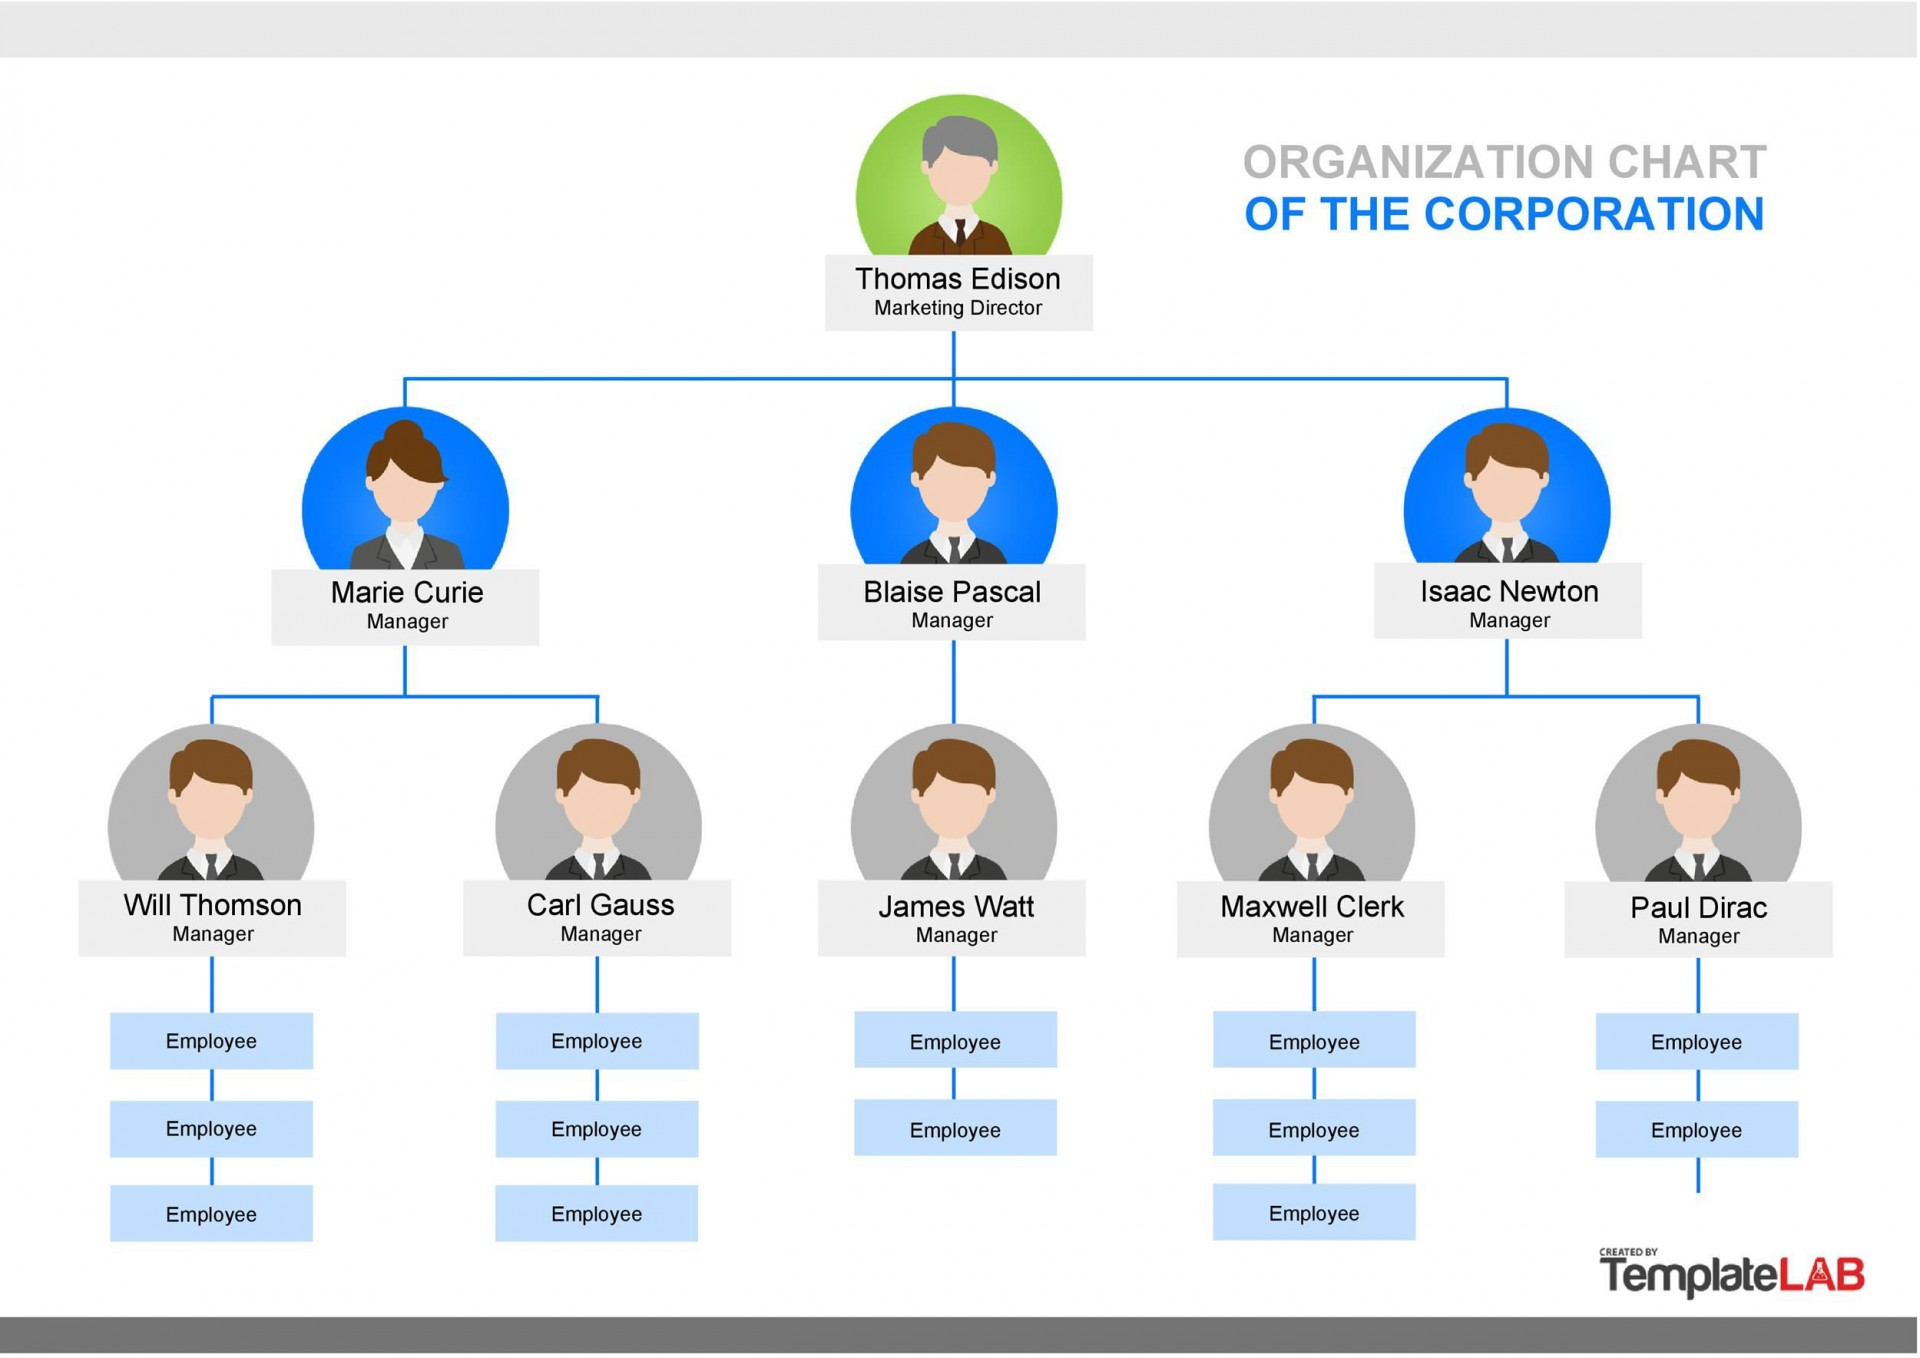 006 Awful Microsoft Office Org Chart Template Photo  Templates M Organization Organizational1920